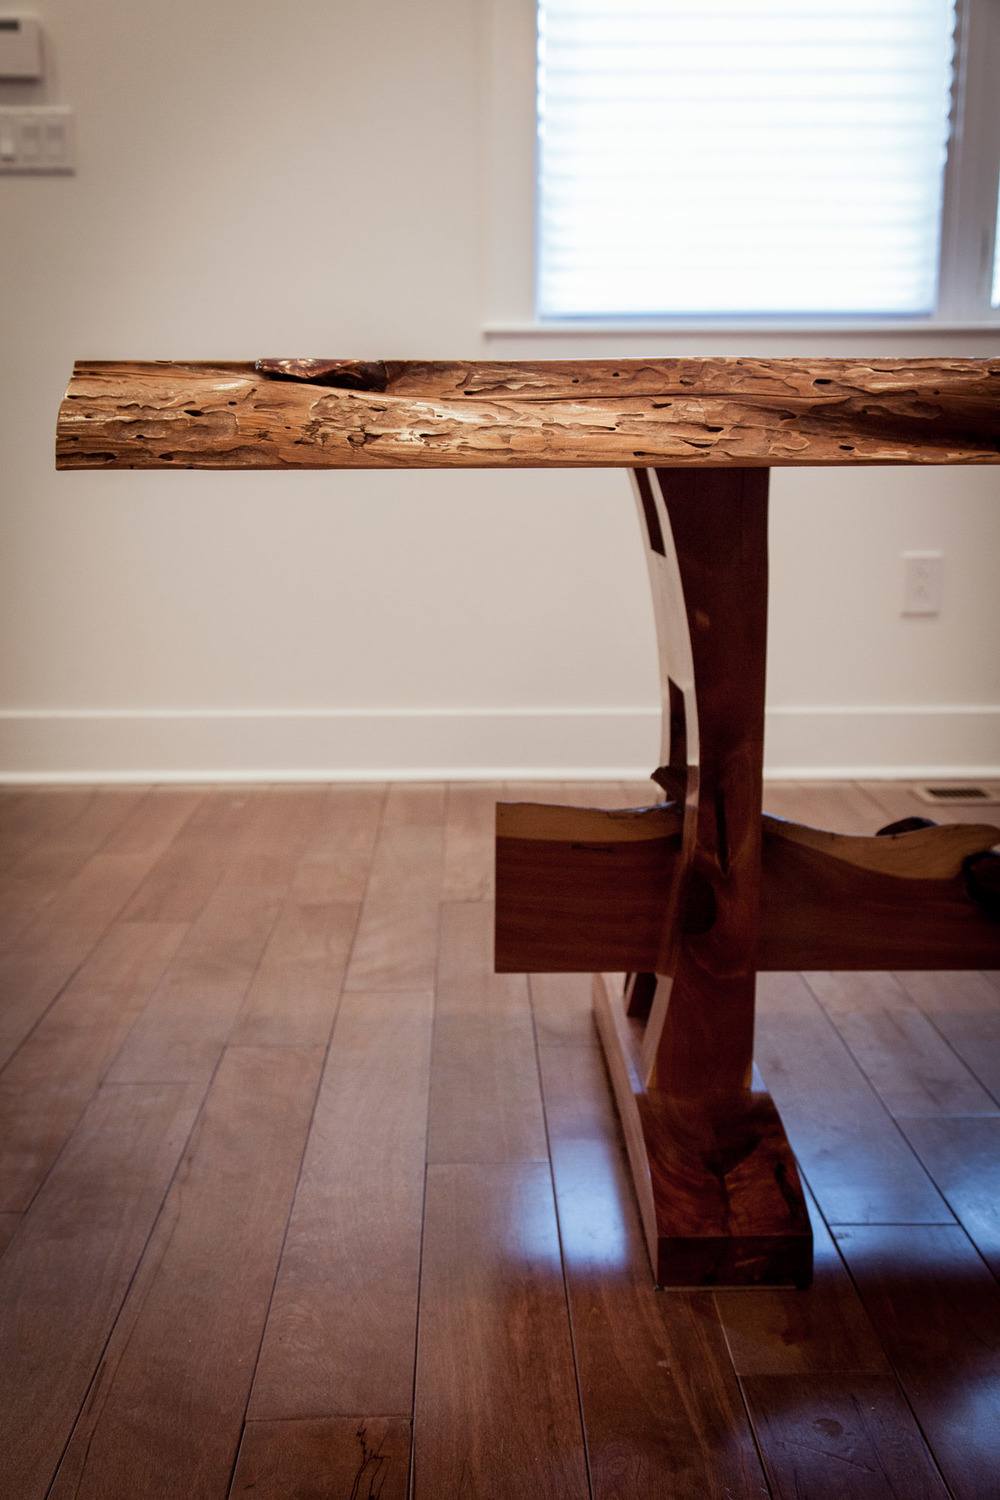 Live edge cedar slab table by valebruck.com